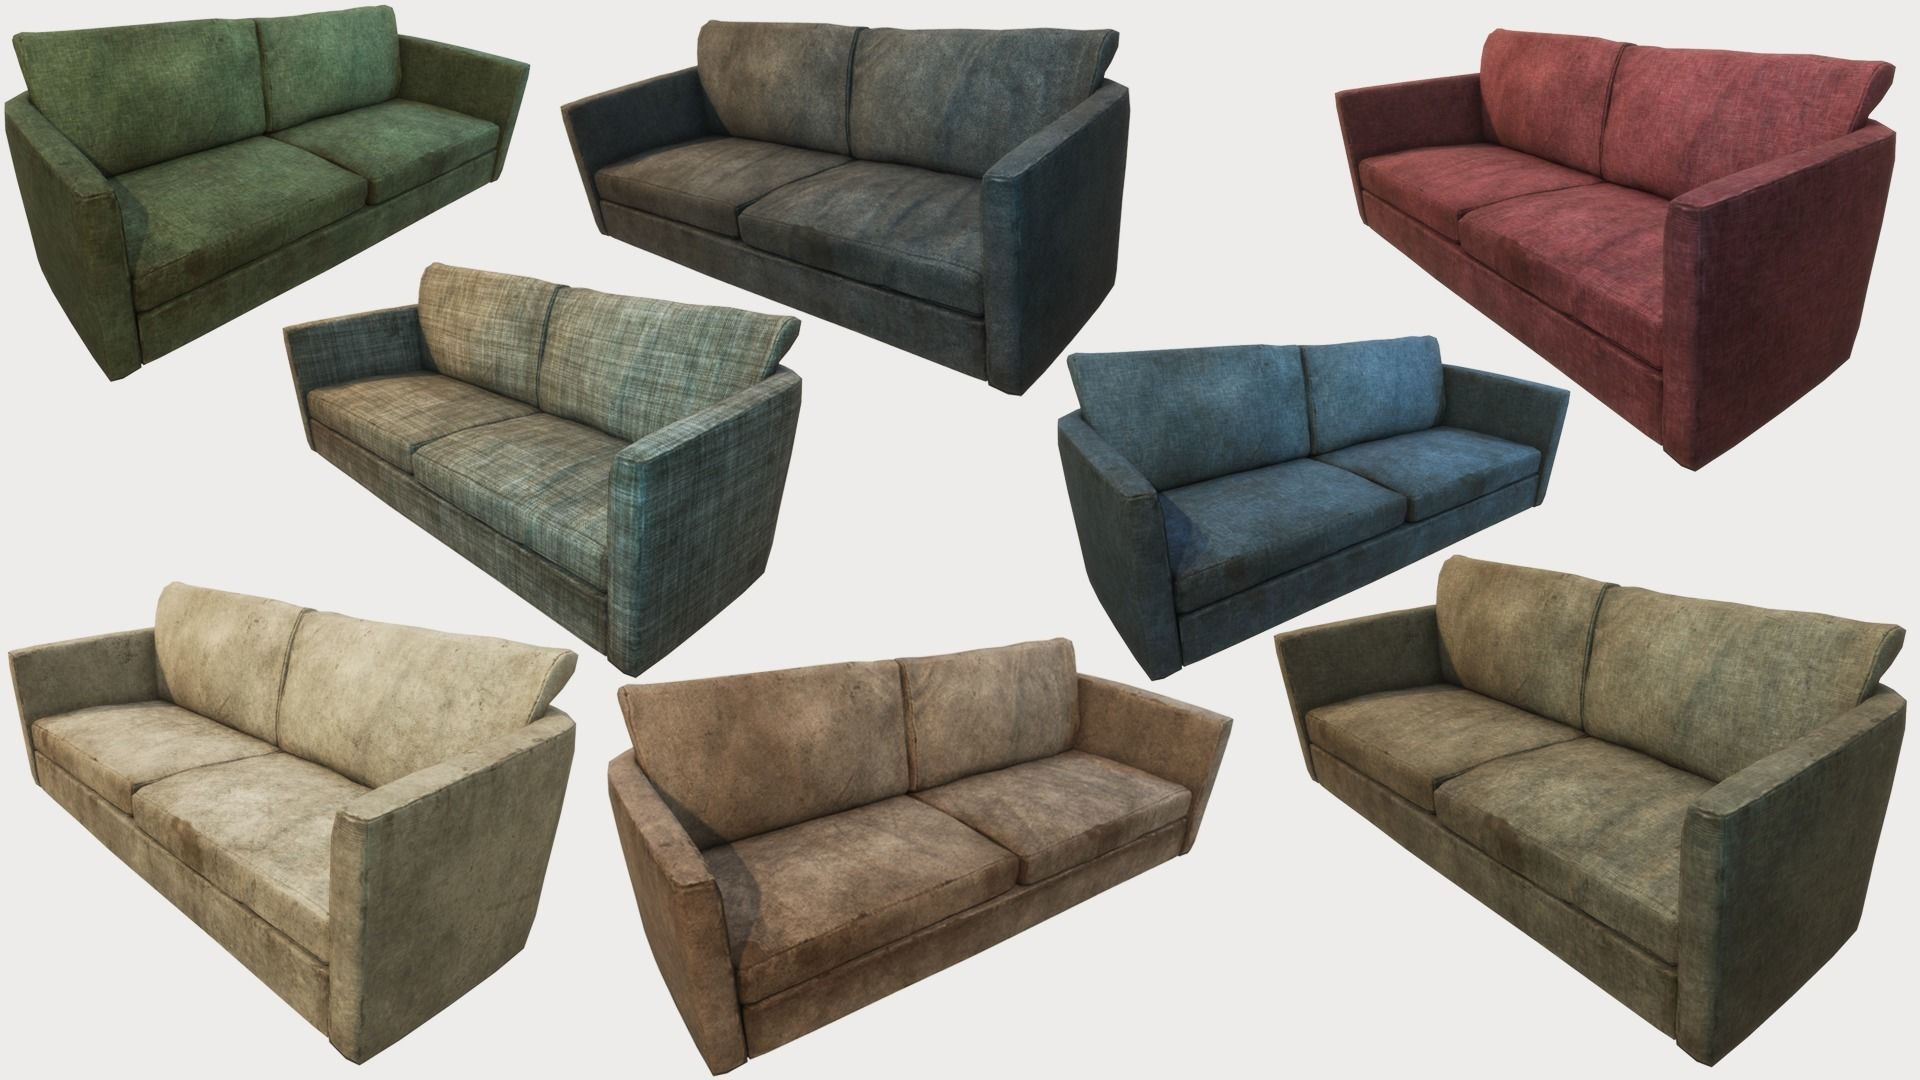 Old Dirty Couches PBR | 3D model